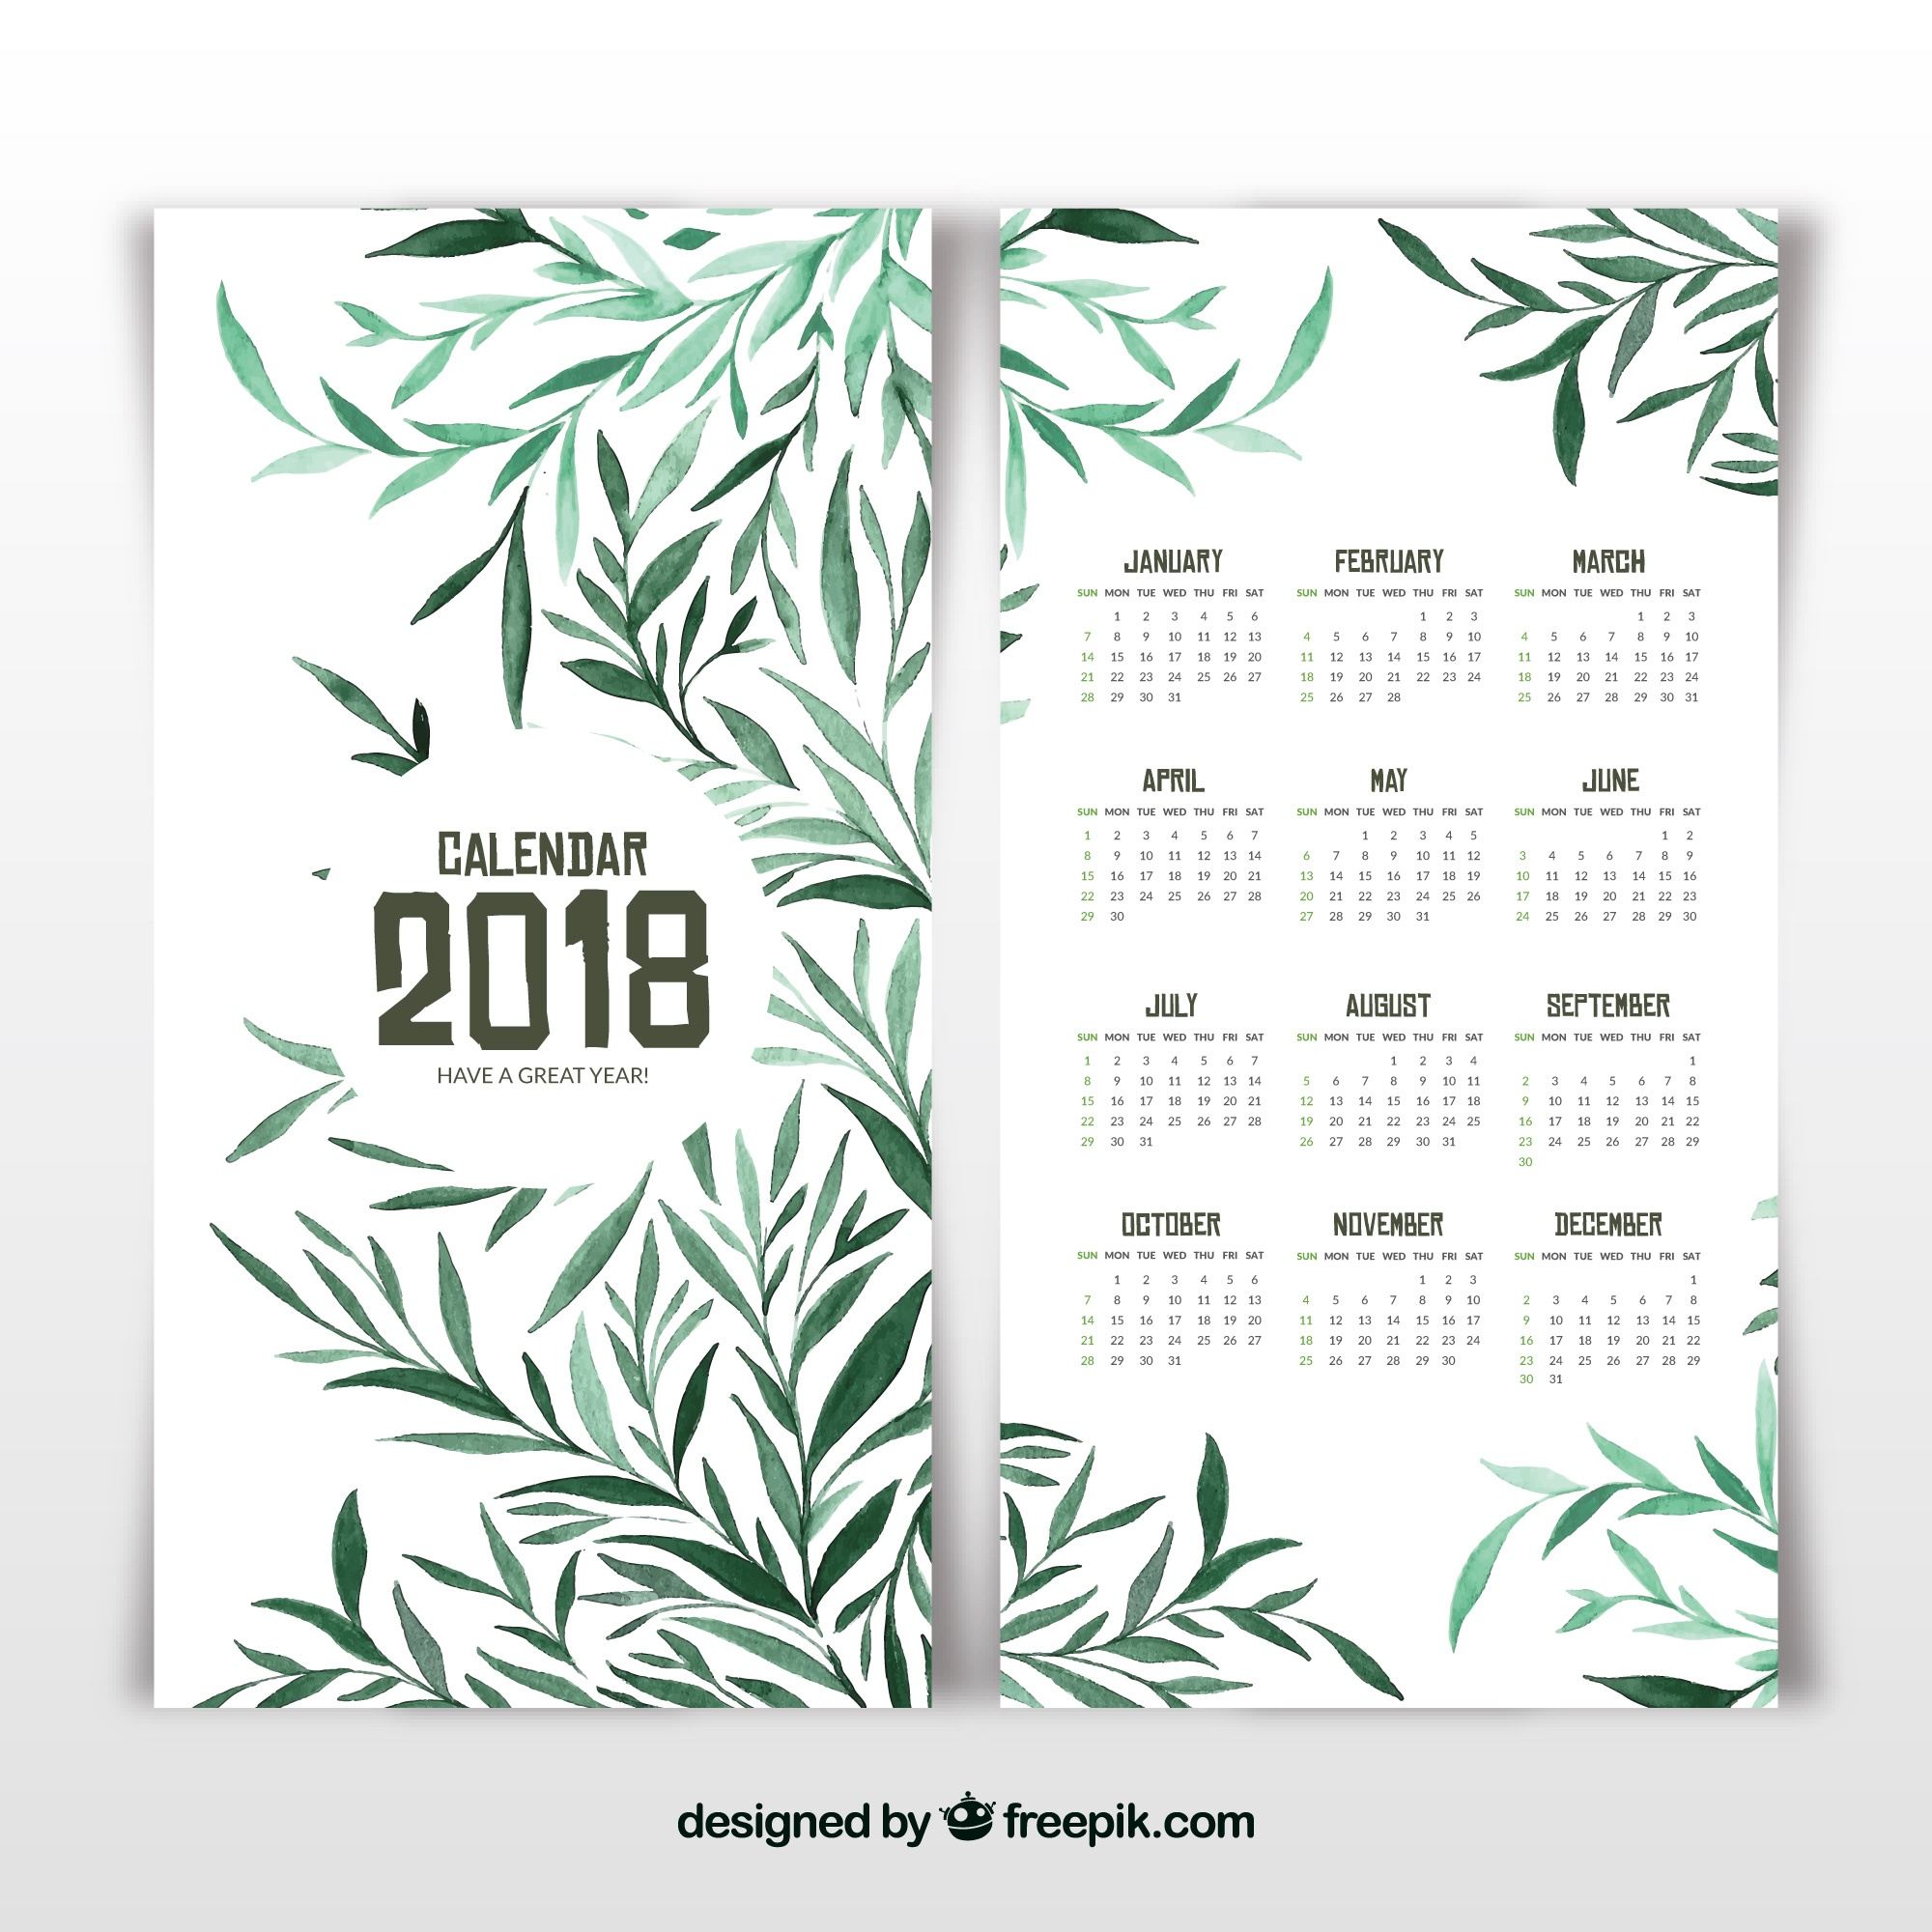 2018 calendar with green leaves